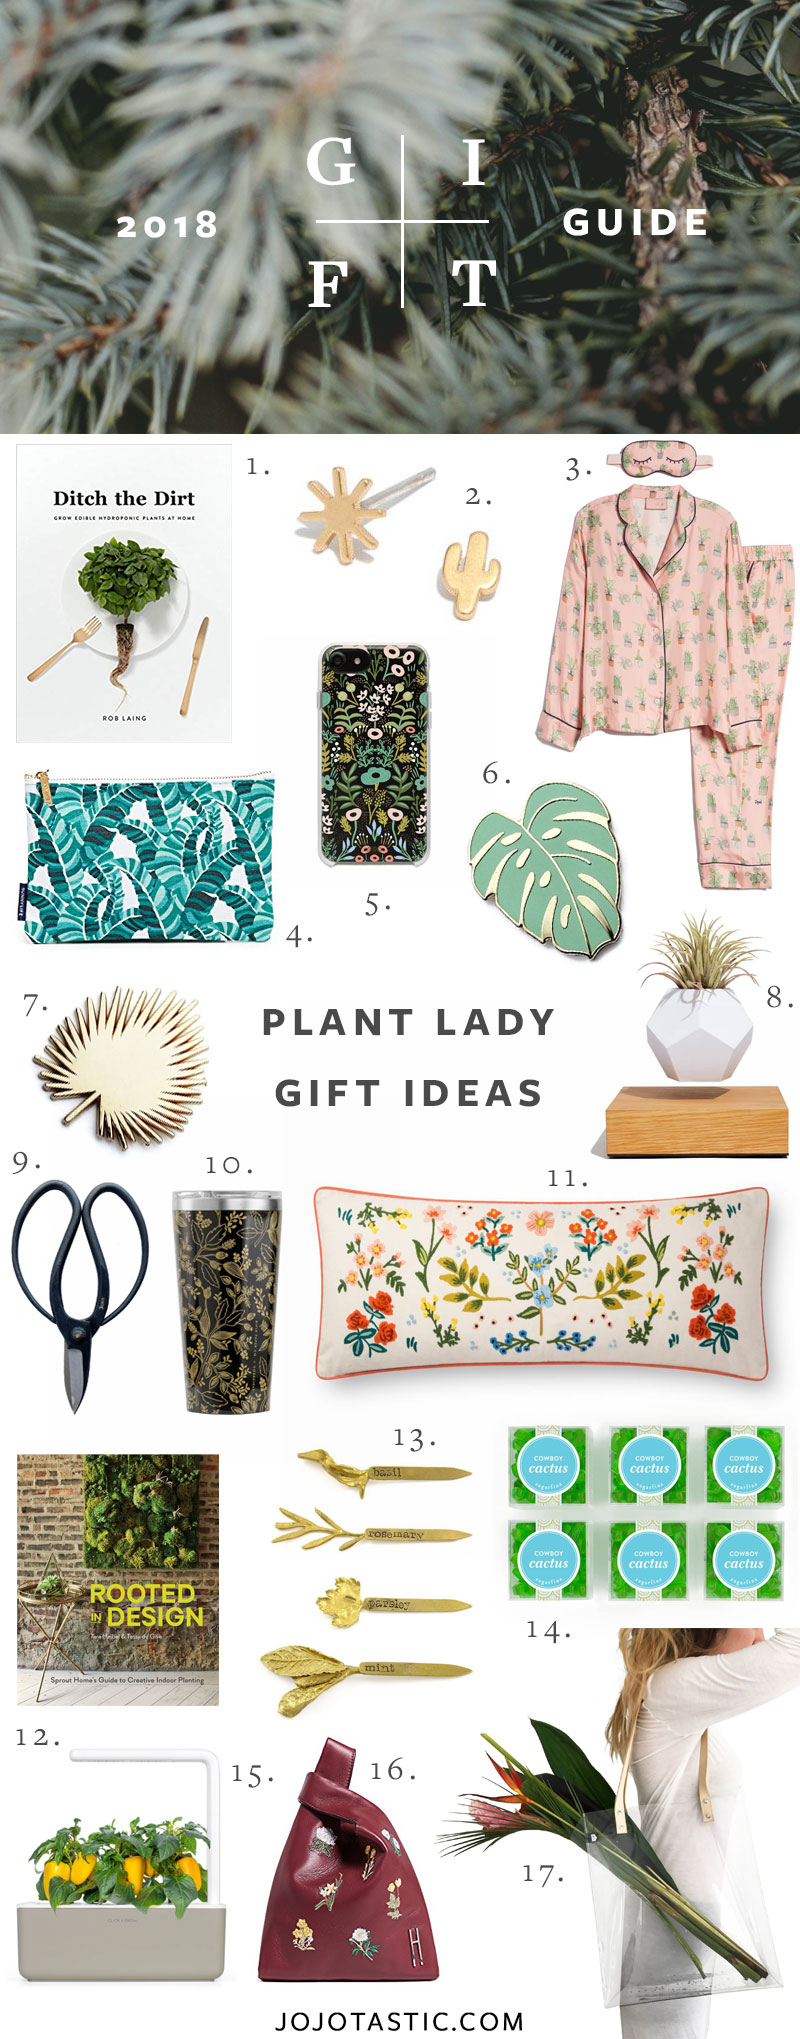 Plant Lady Gift Ideas, Gift Guide for Christmas & Holidays 2018 via jojotastic.com #giftguide #giftidea #giftgiving #gifts #presents #christmaspresents #christmasgiftideas #christmasgift #plantlady #plants